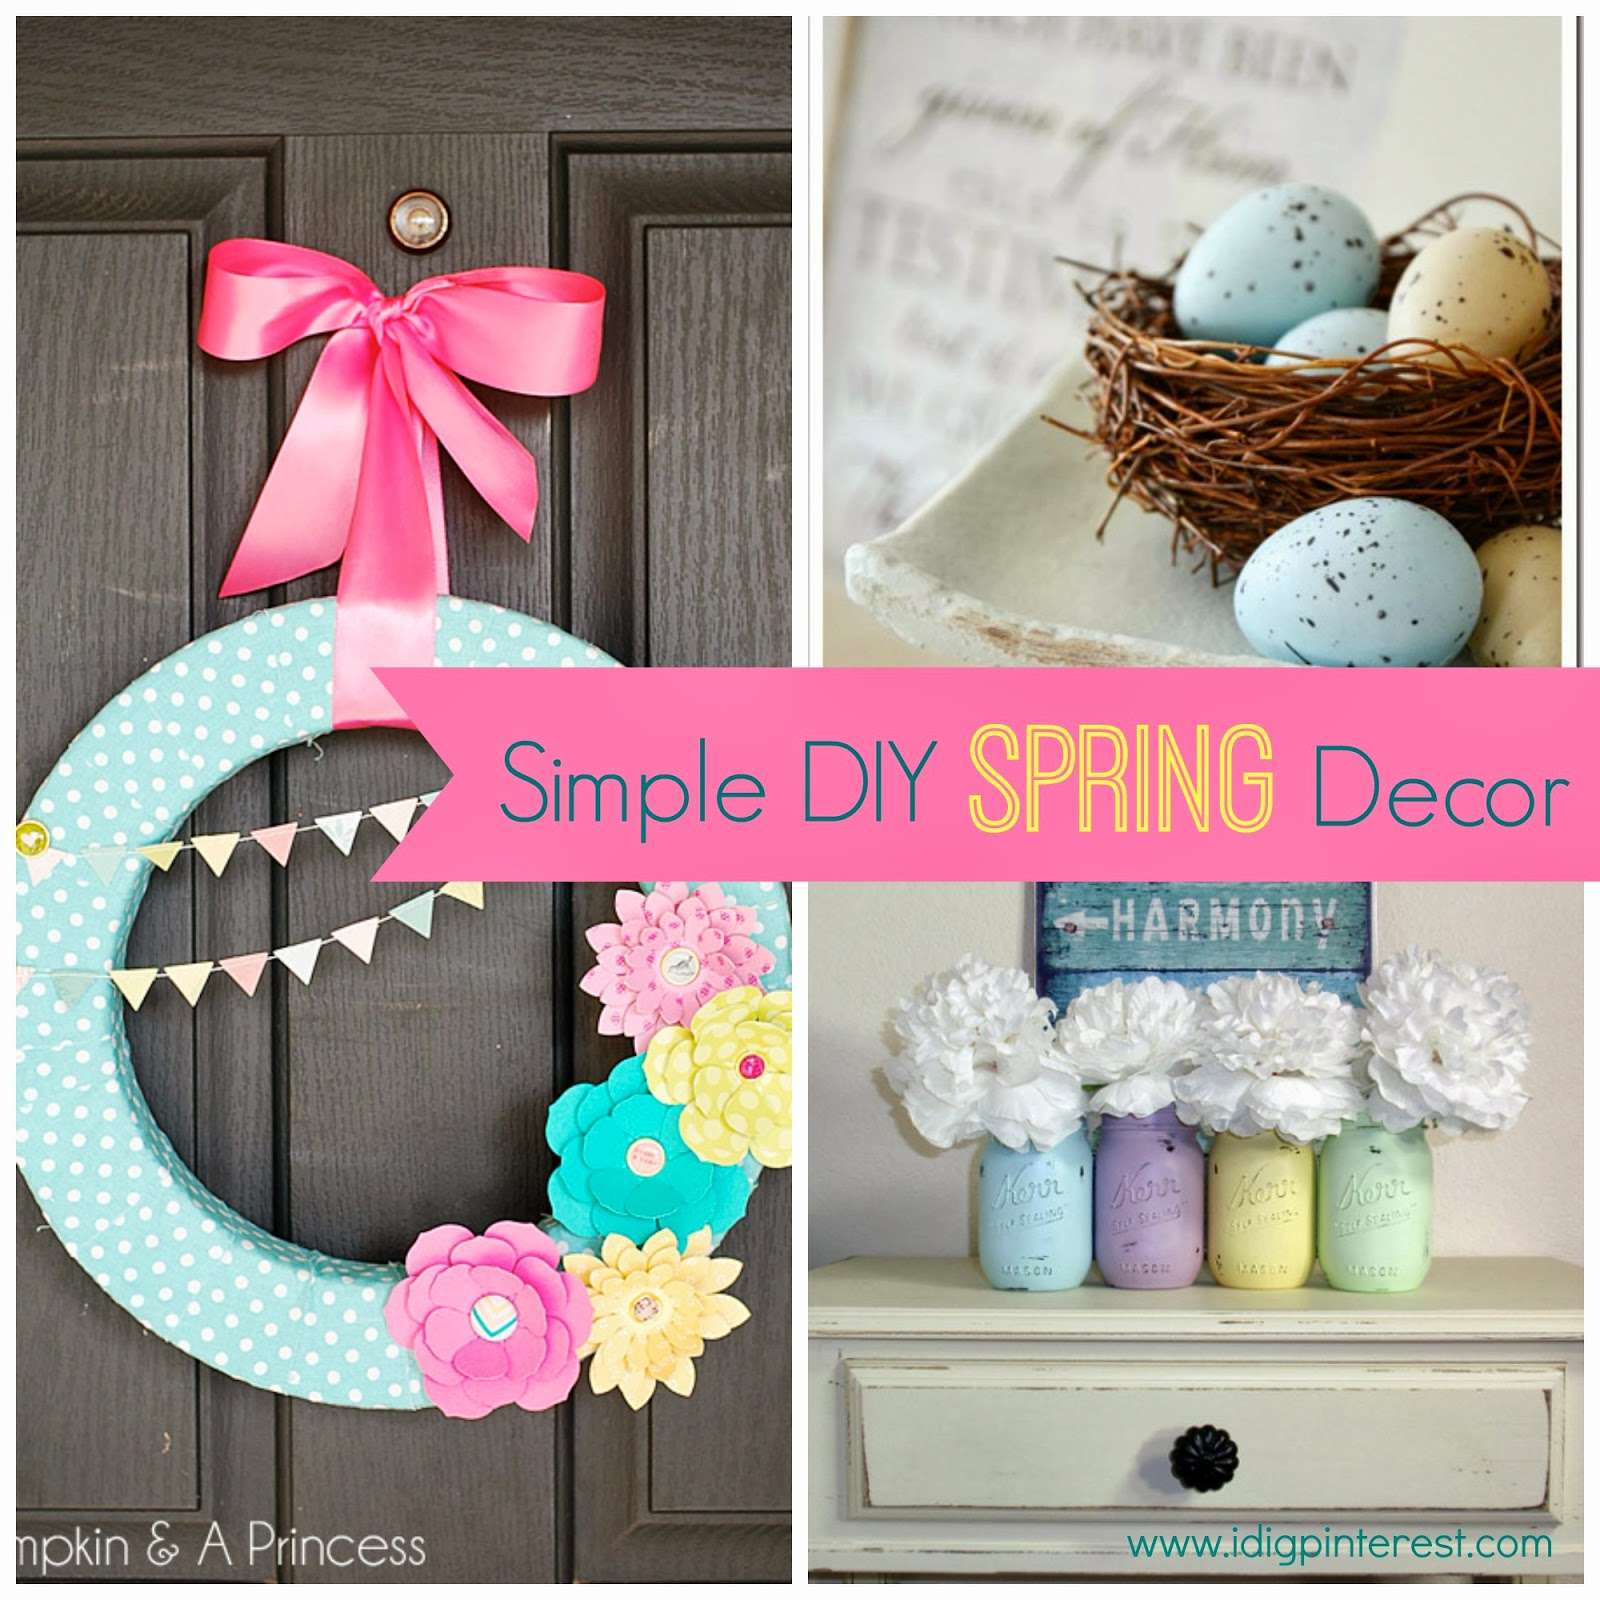 Spring decorating with pops of color pinterest party the ask home design - Bedroom decor pinterest ...